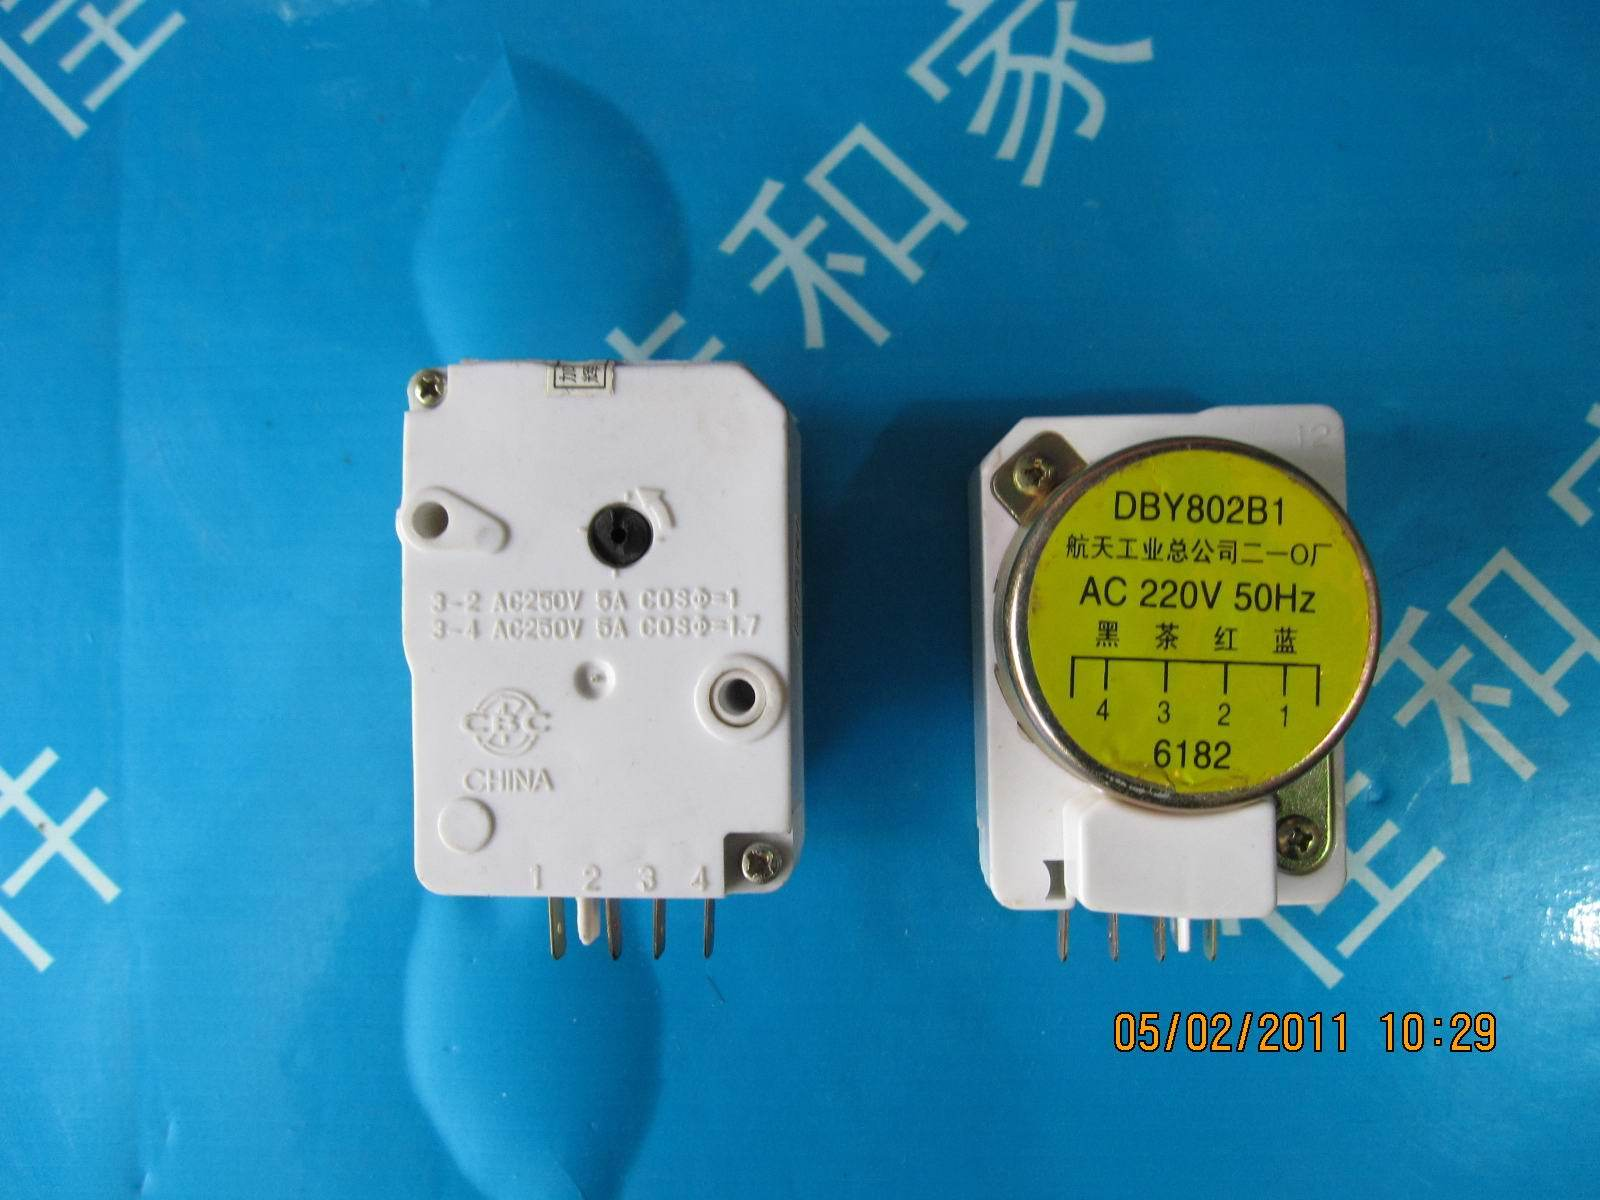 Refrigerator accessories dby802a1 rong sheng defrost timer electric refrigerator dby802b1 rong sheng defrost timer ac 250v 4a 4 celsius bimetal refrigerator defrost thermostat bc6014